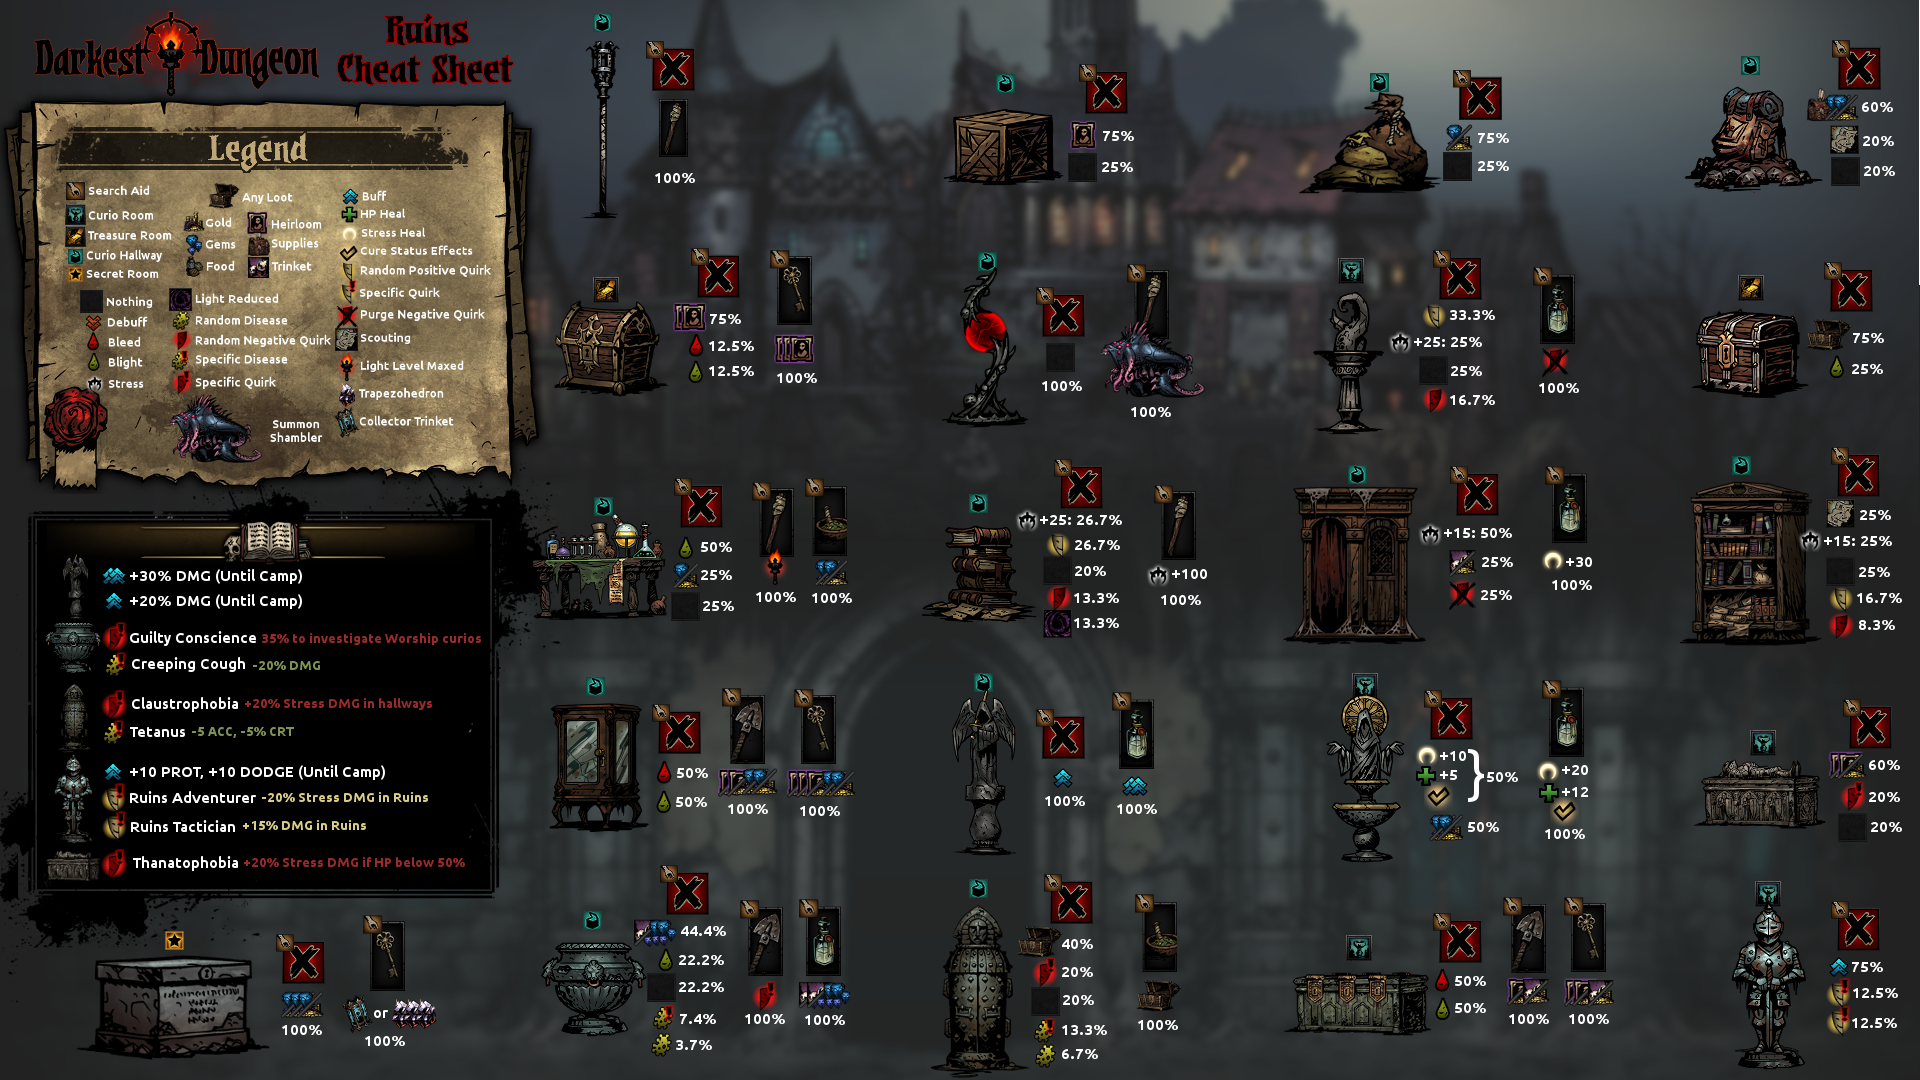 How to die the right way in darkest dungeon: 5 tips from the.